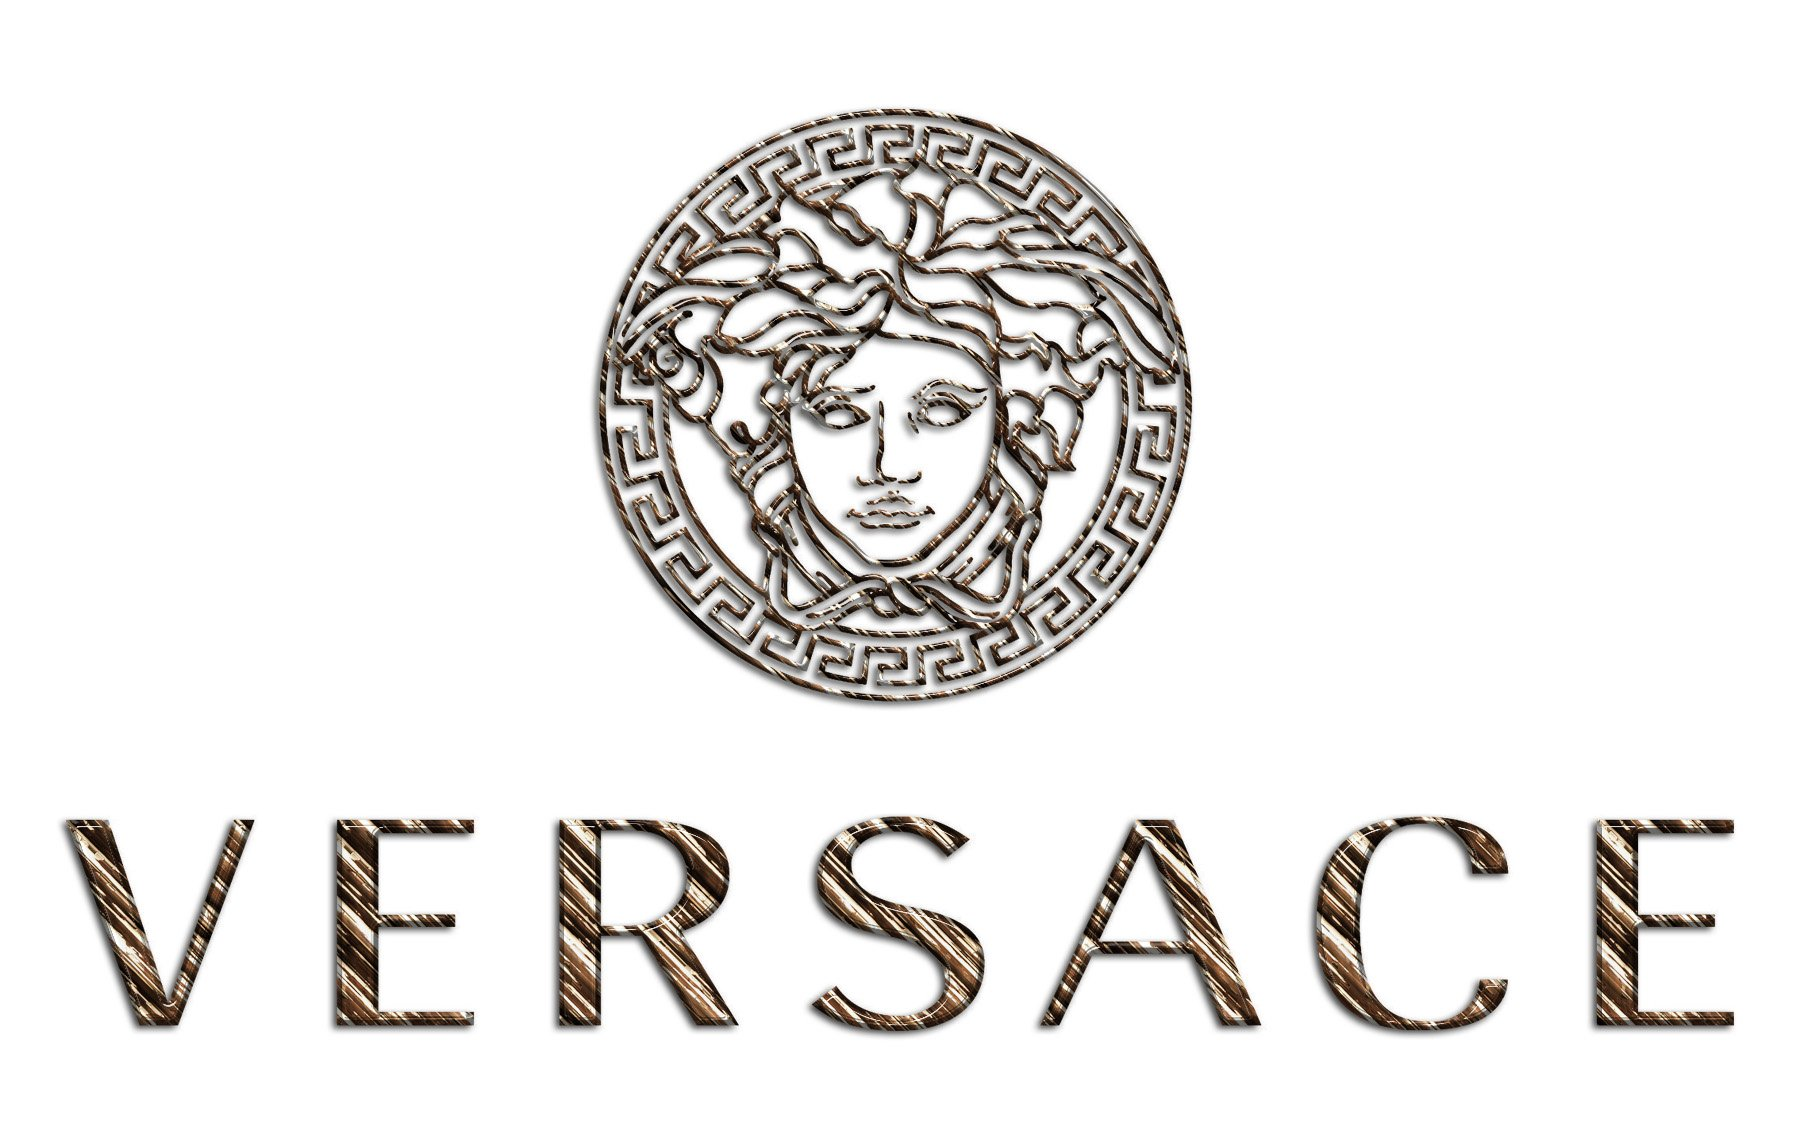 Versace Logo, Versace Symbol, Meaning, History and Evolution